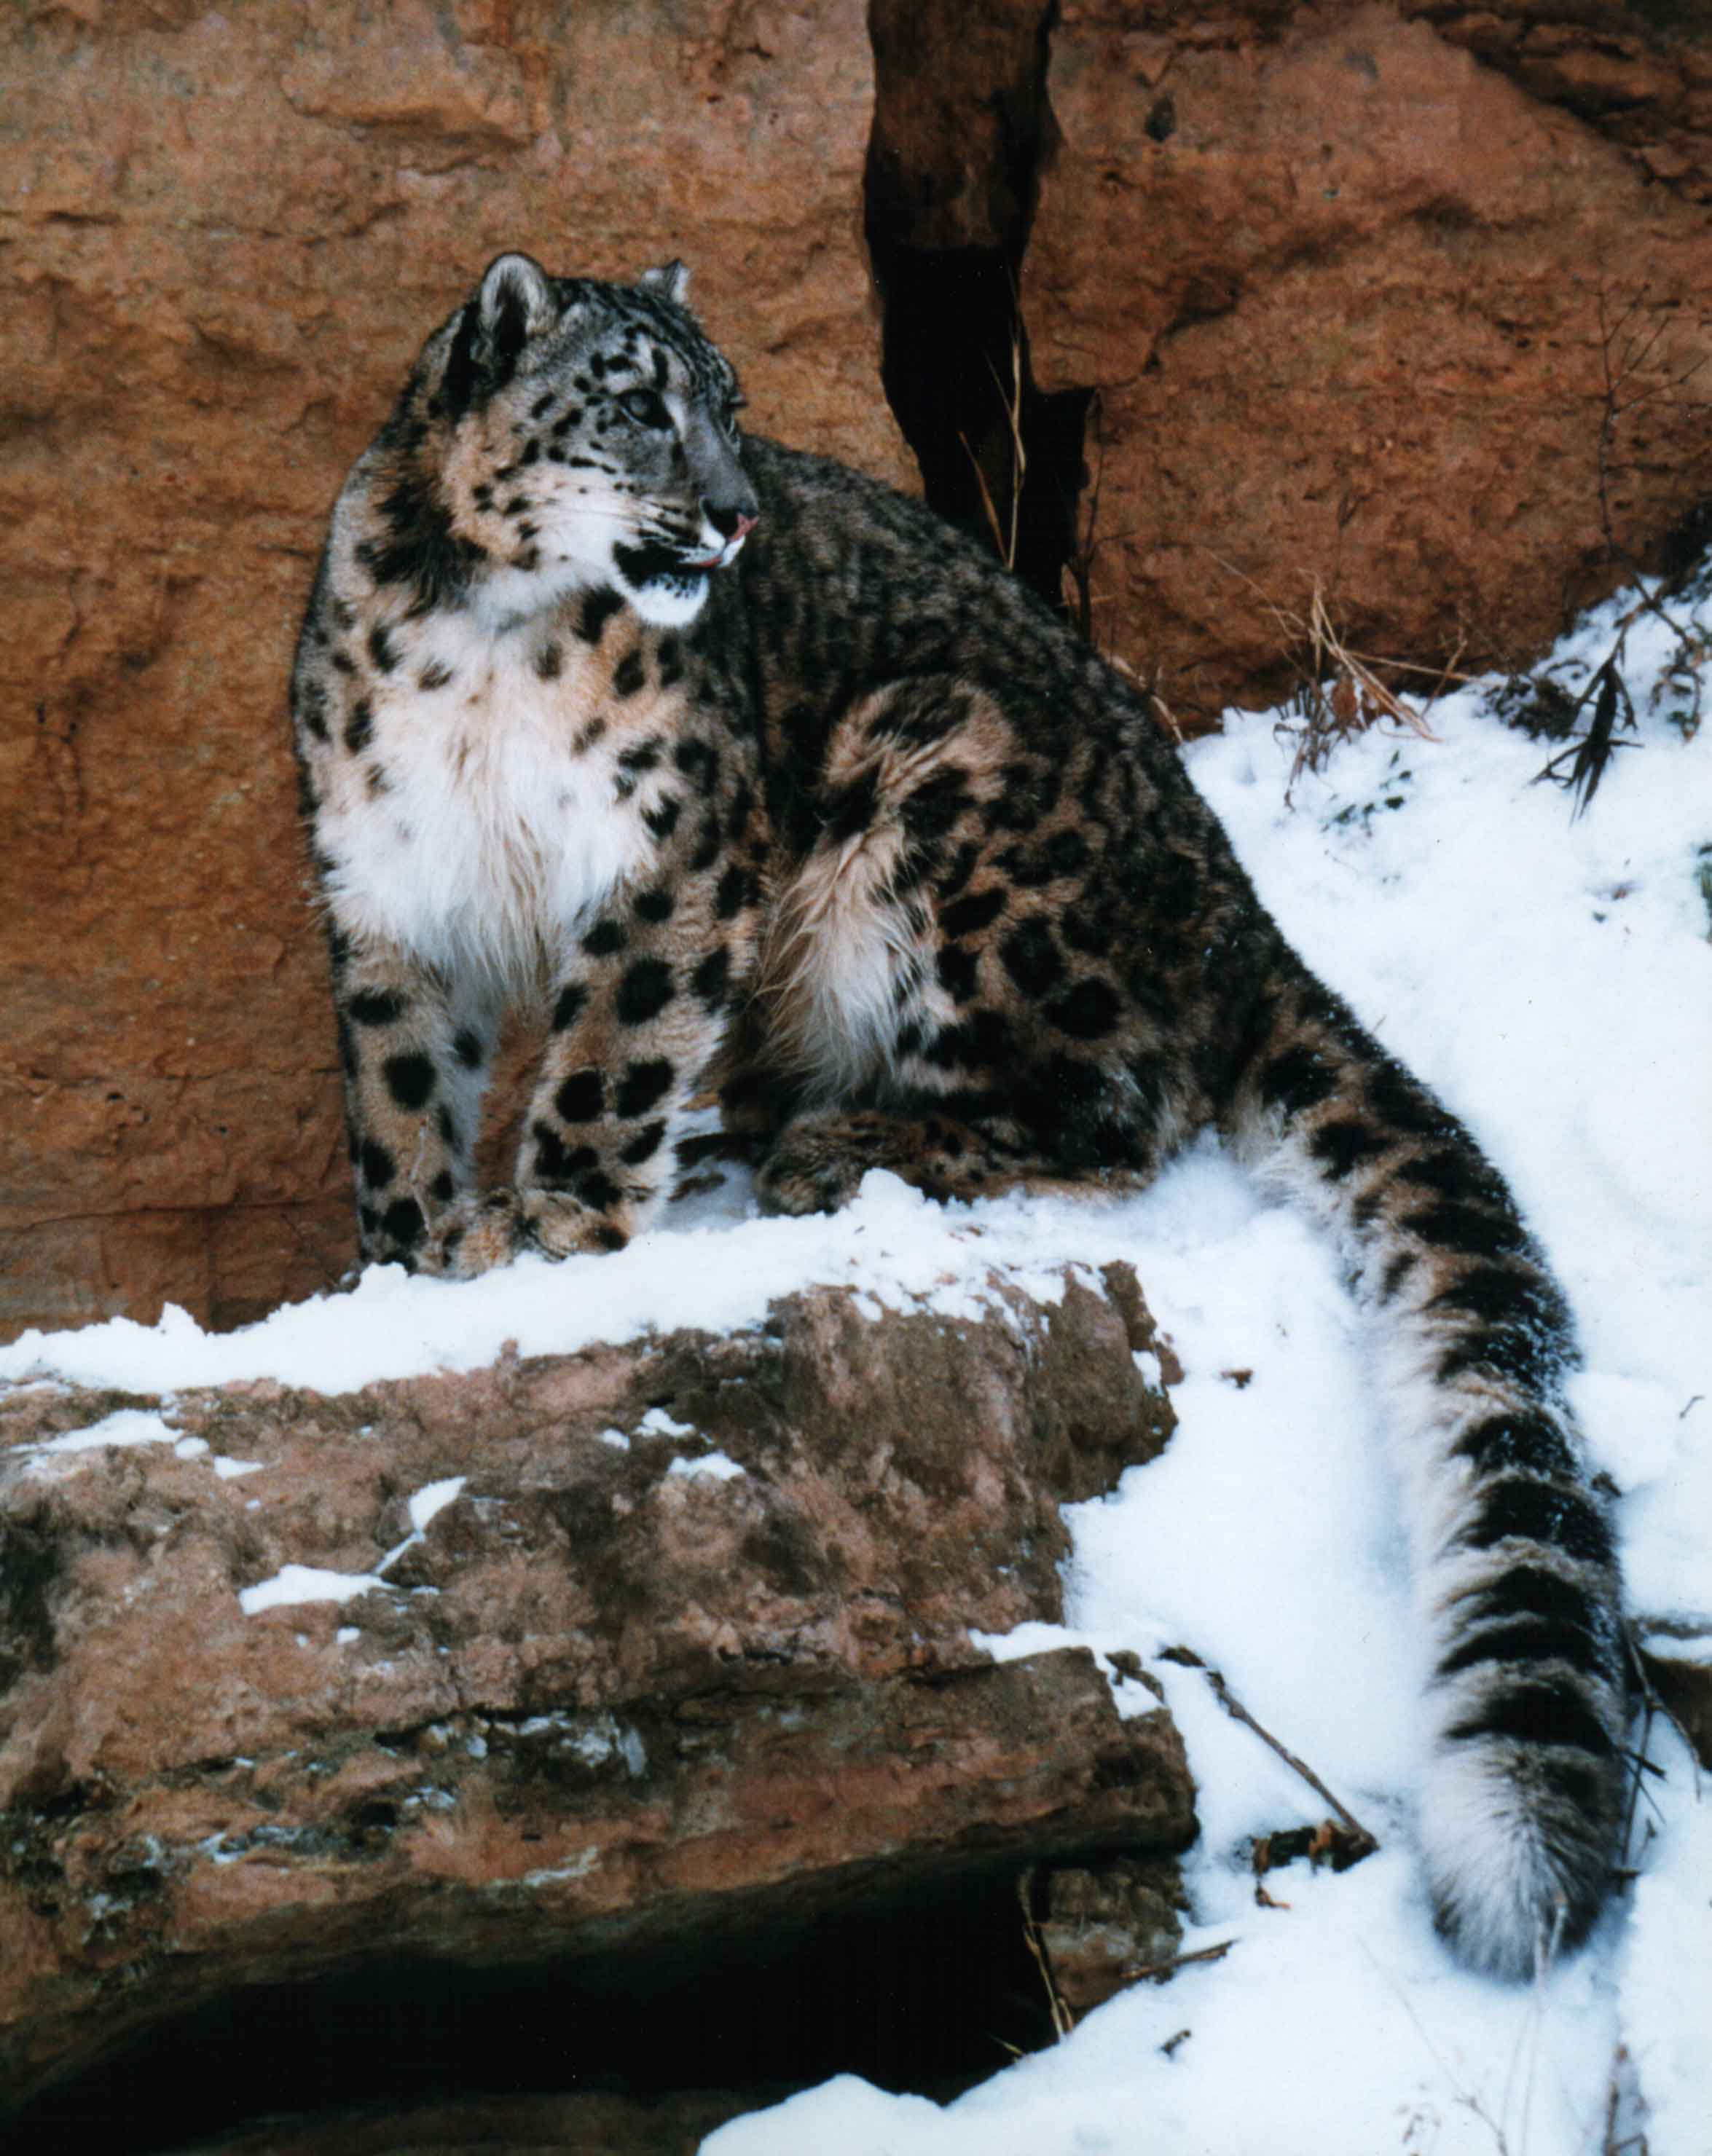 Jetta the Snow Leopard